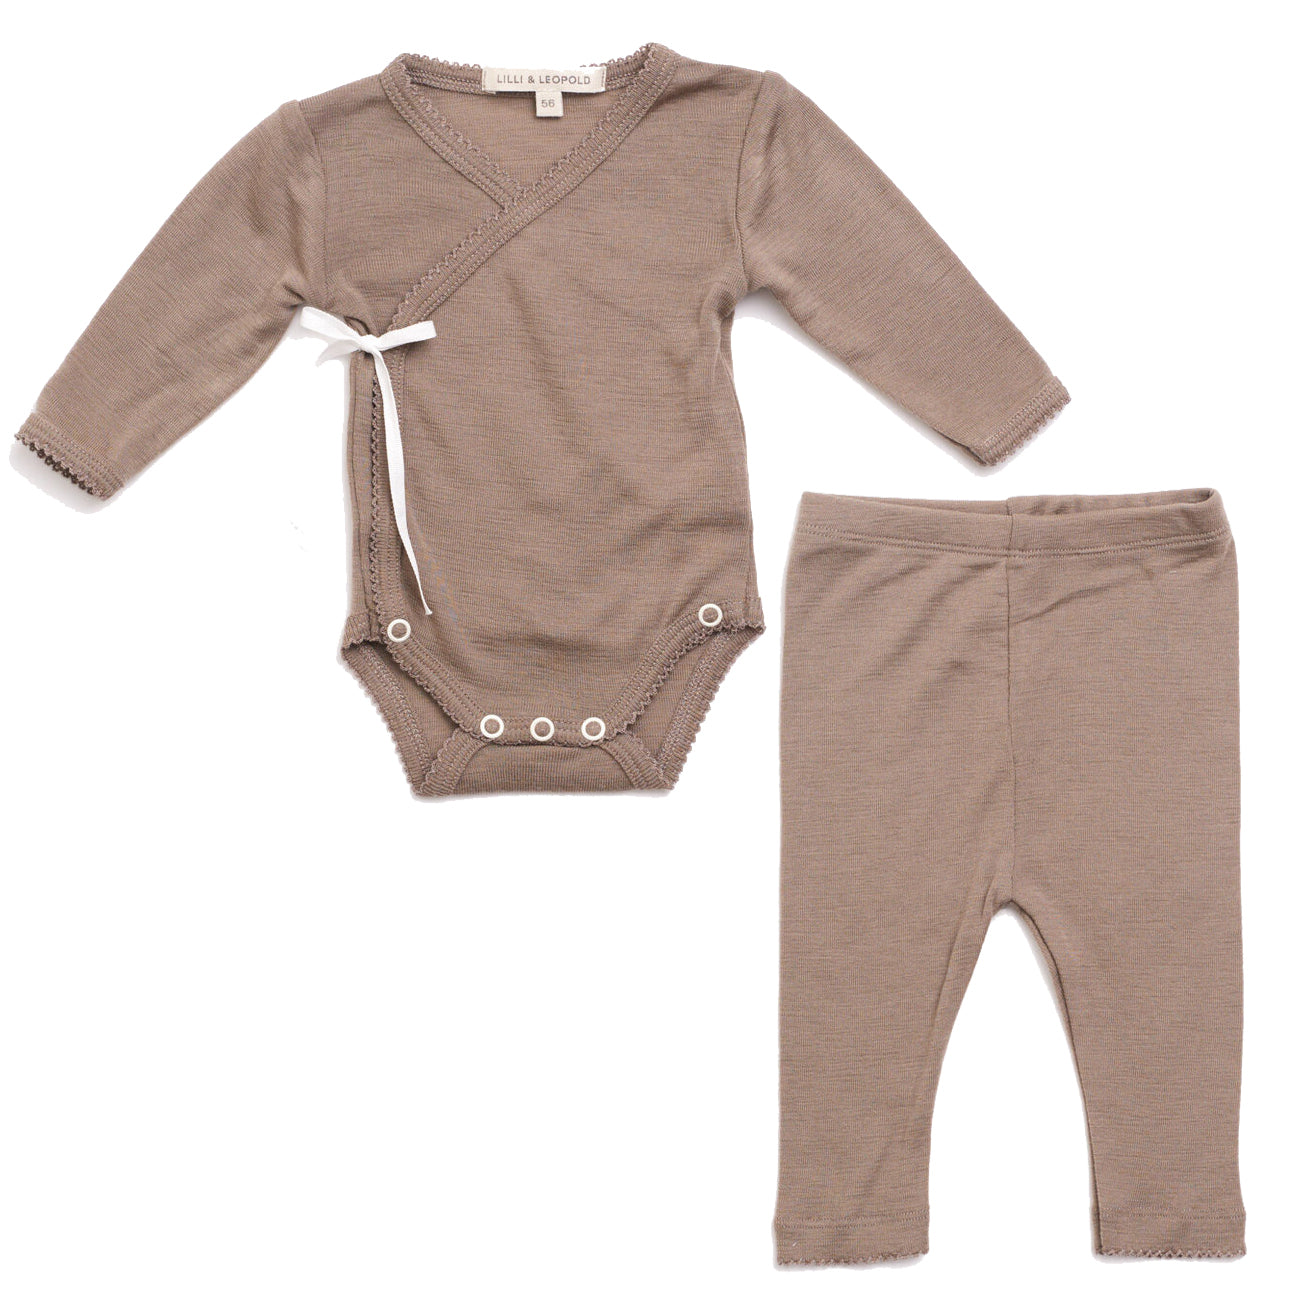 lilli and leopold kimono baby set (more colors)